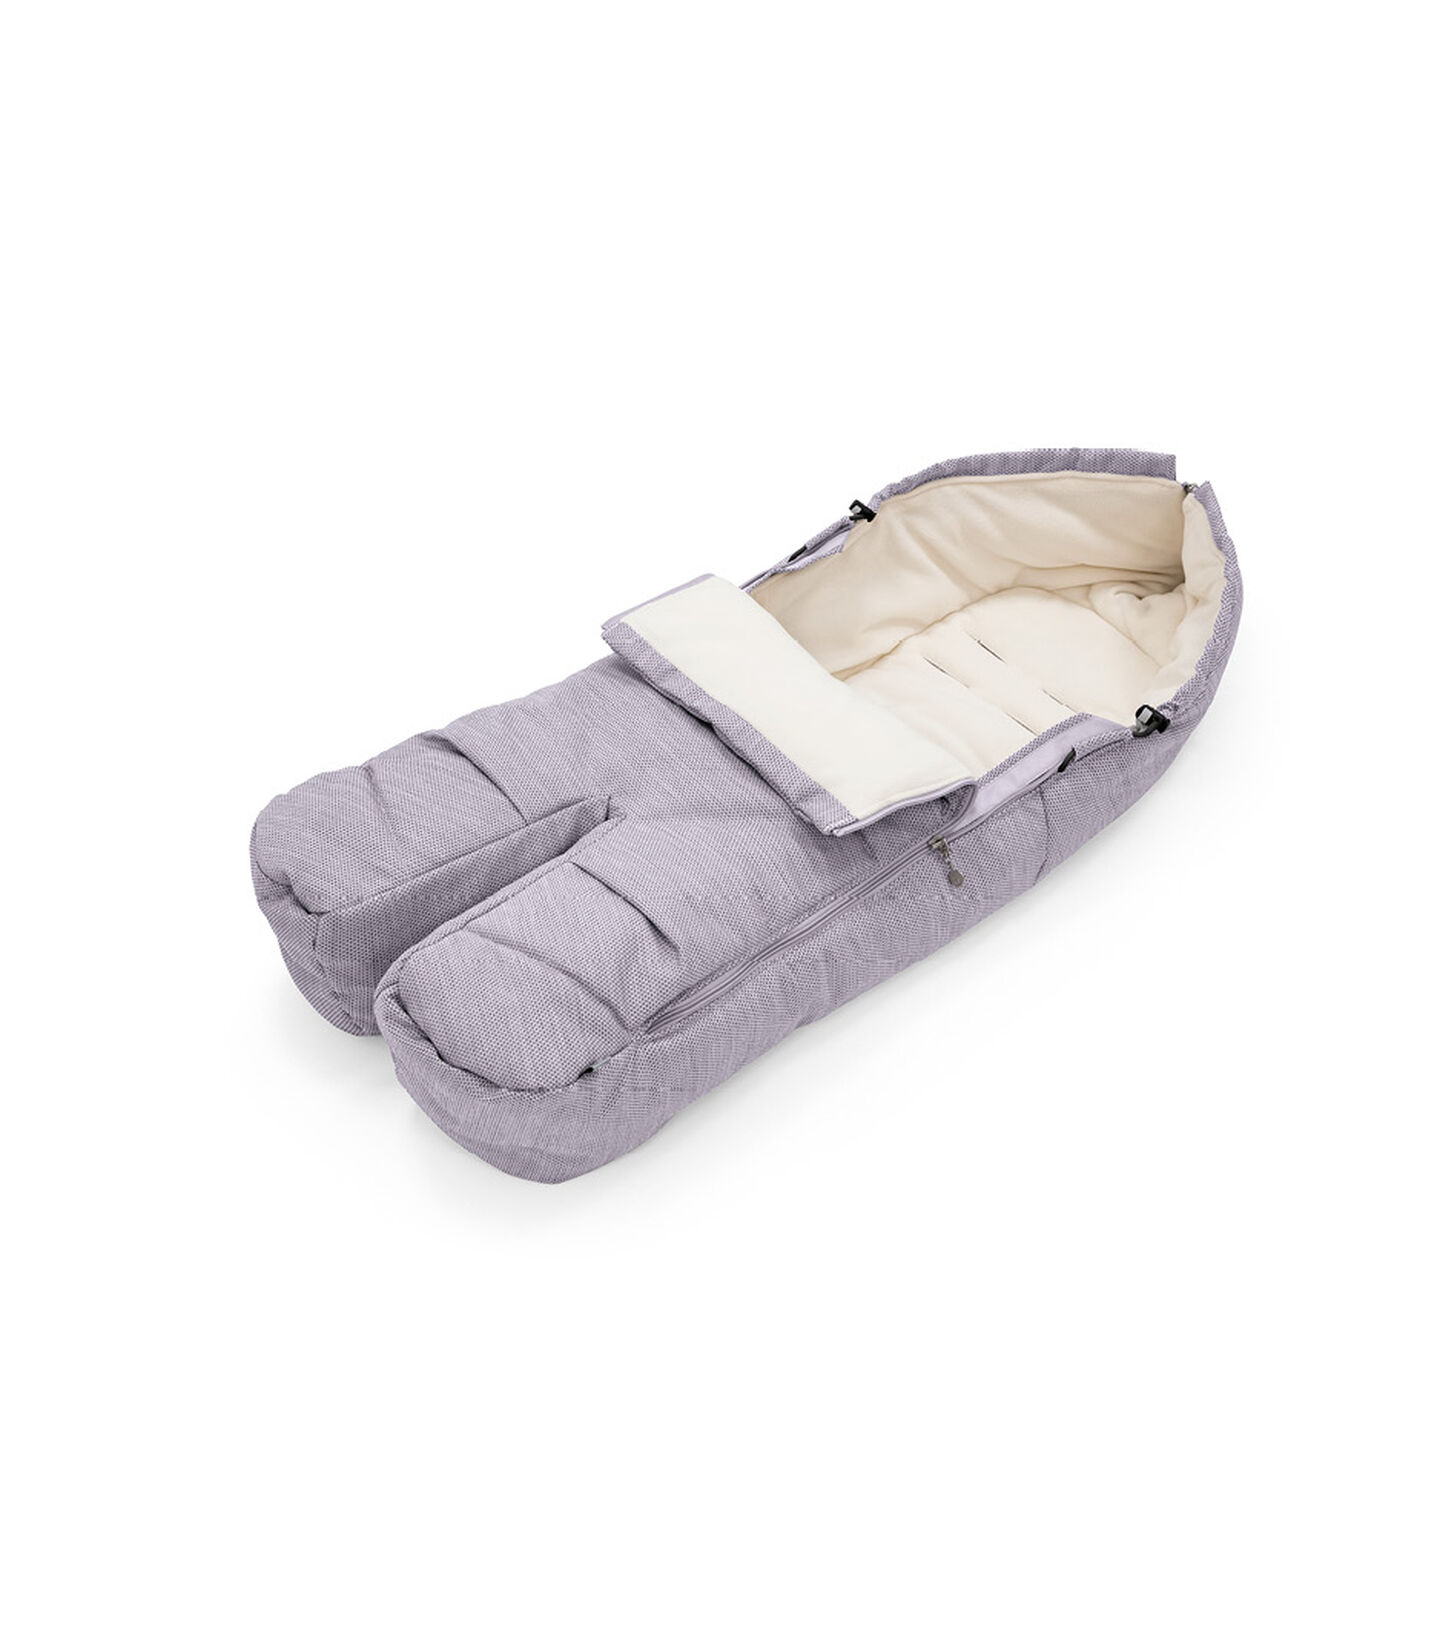 Stokke® Foot Muff Brushed Lilac, Brushed Lilac, mainview view 2